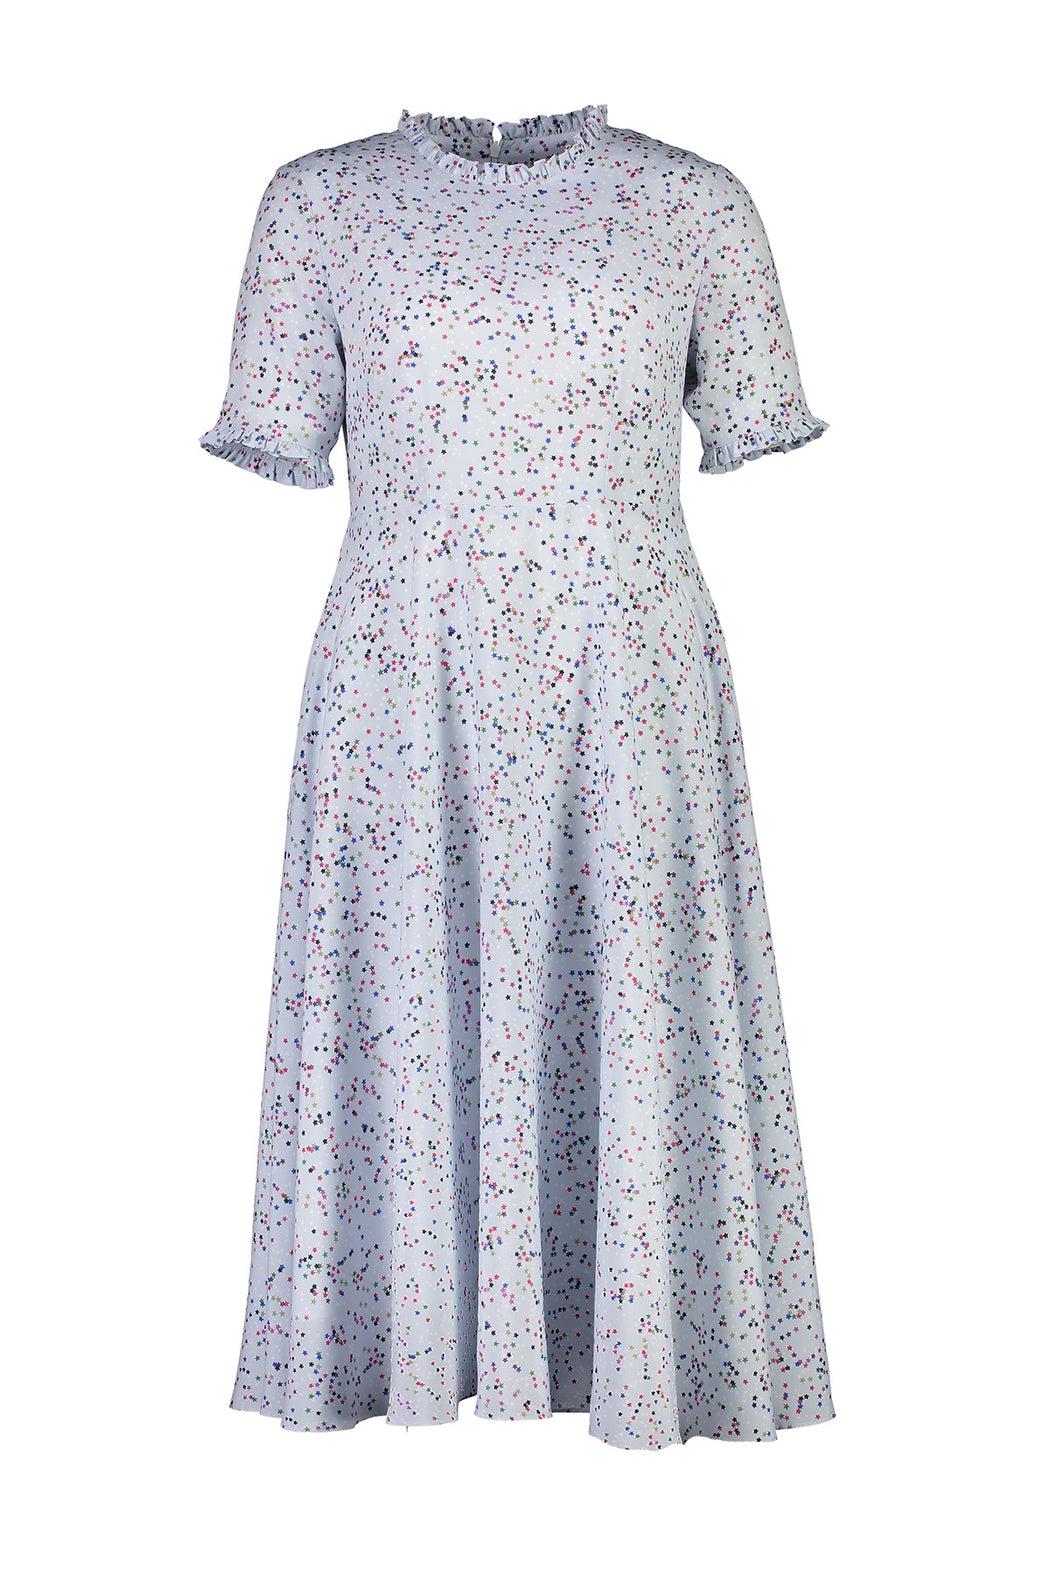 WORLD 4534 Proper Dress Pale Blue Stars